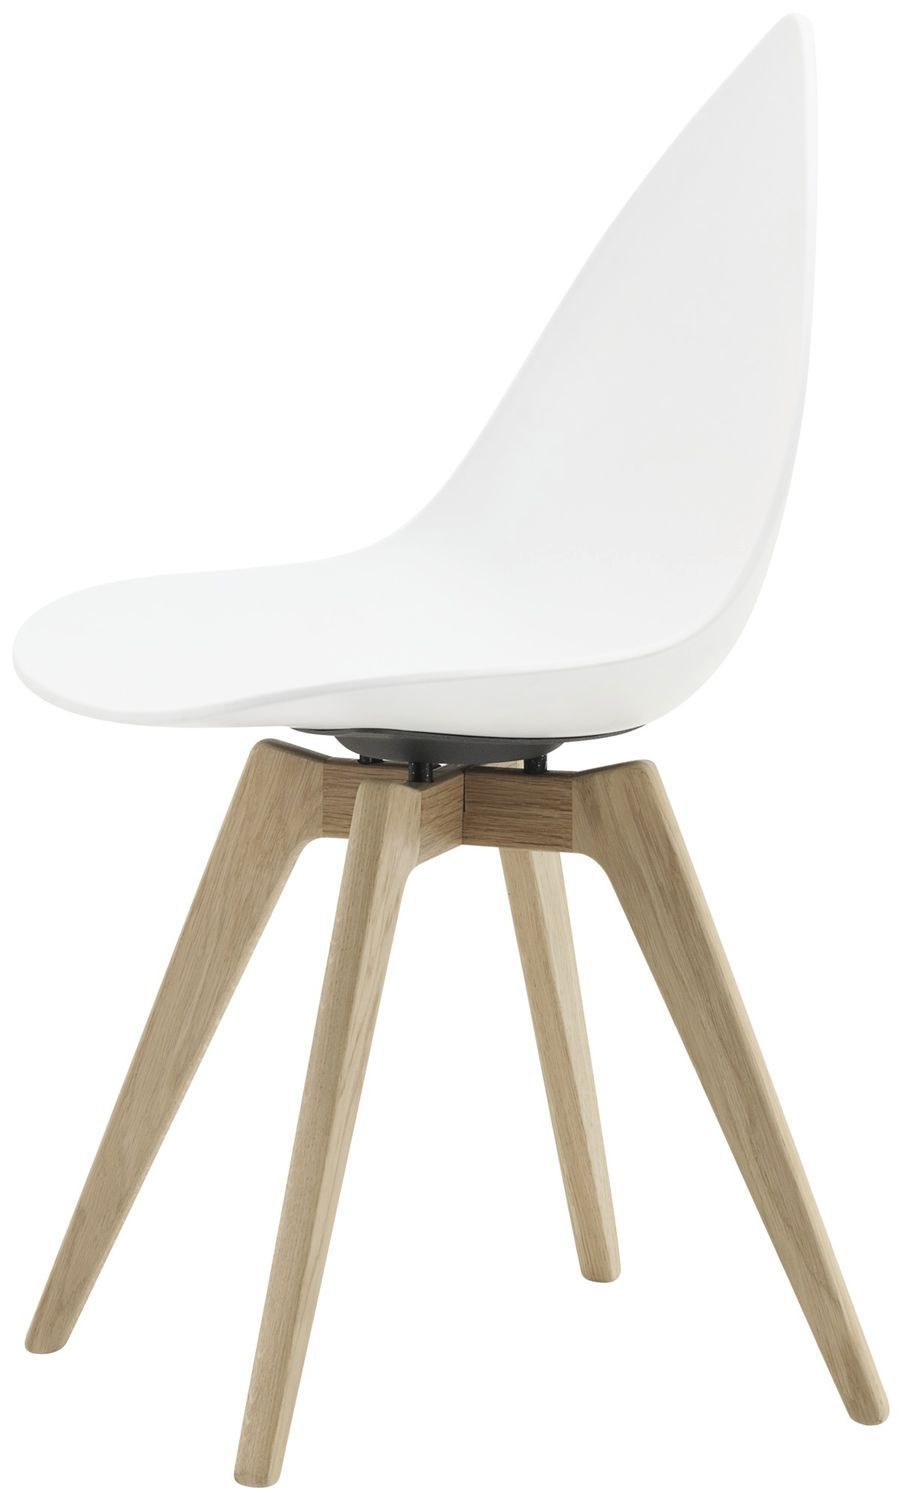 Contemporary chair / upholstered / oak / fabric OTTAWA BoConcept ...  sc 1 st  ArchiExpo : boconcept chaise - Sectionals, Sofas & Couches